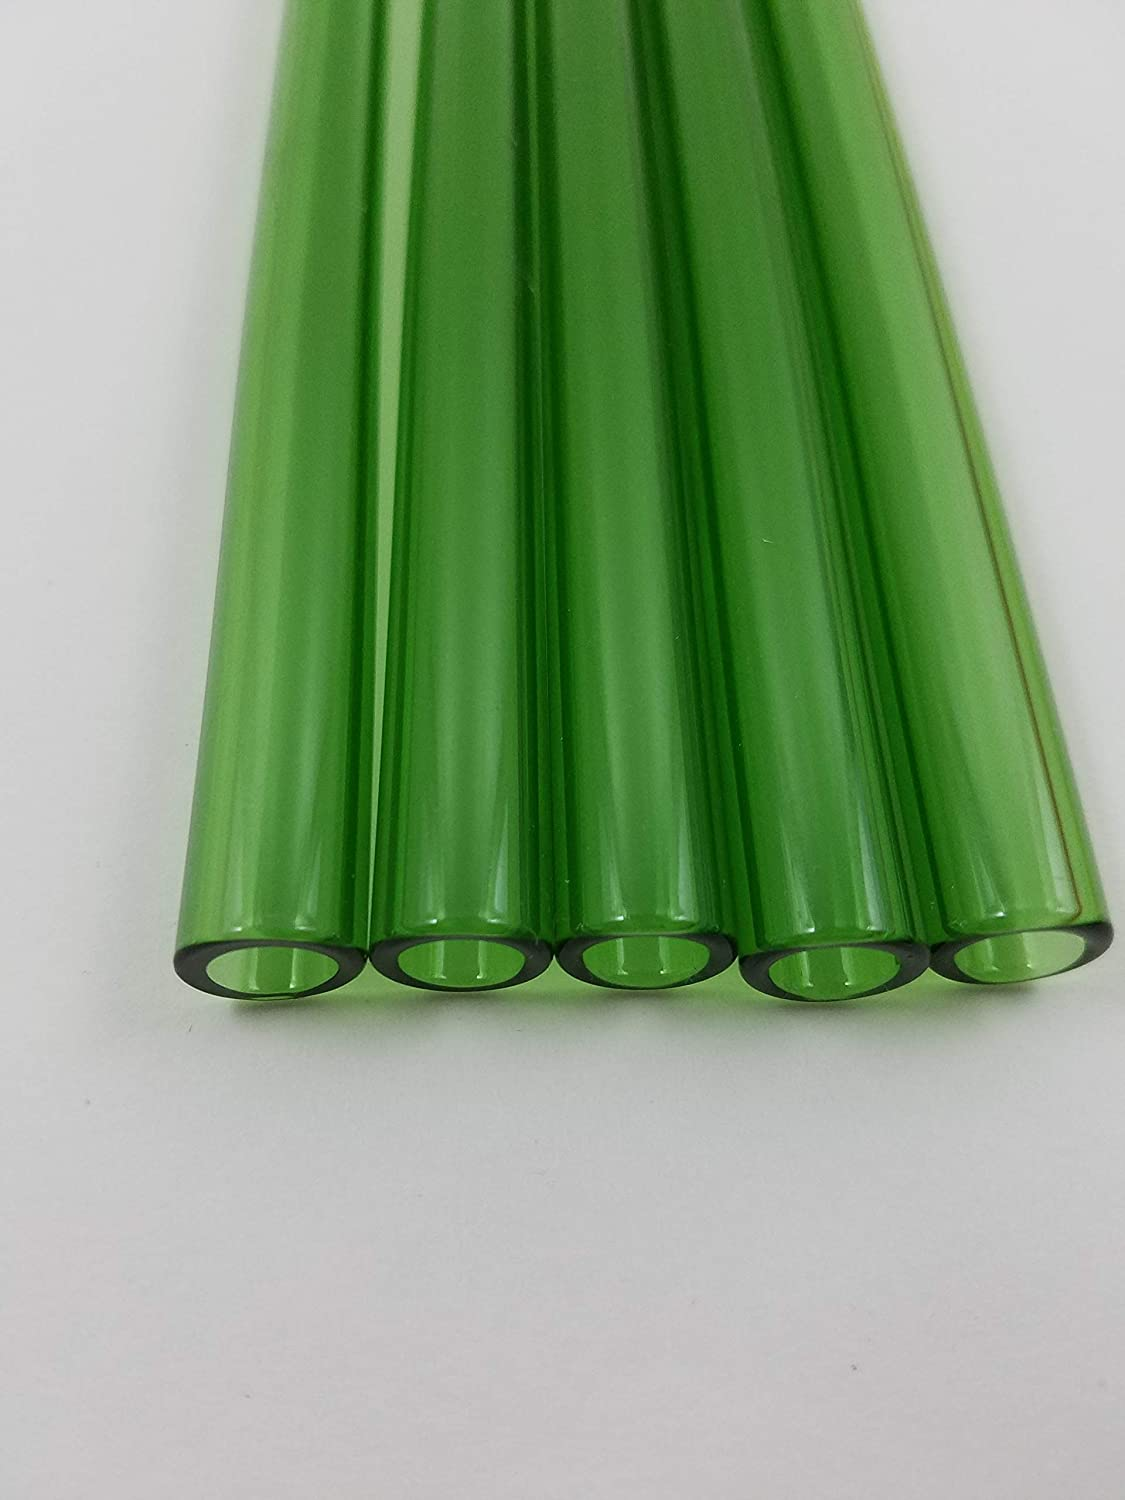 6 Inch Borosilicate Glass Blwoing Tubing 5 Tubes Colored Tubes 12mm OD 2mm Thick Wall ( 6 inch , Green) a2zsale N set 6-5